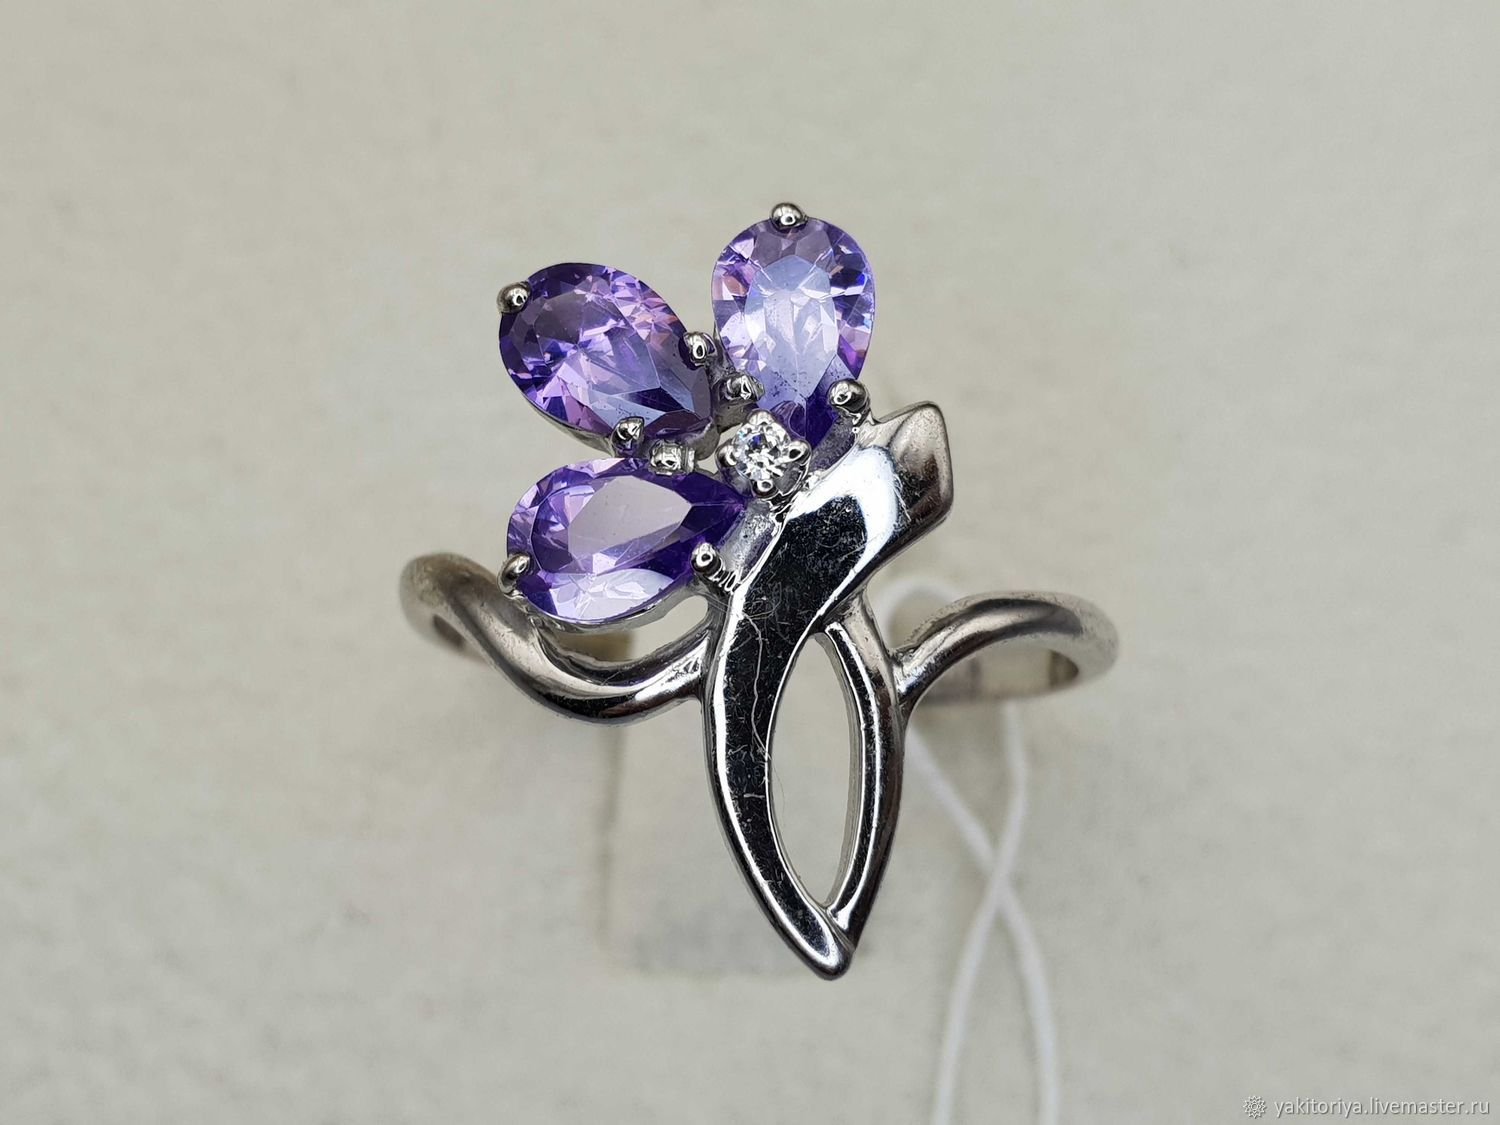 Silver ring with amethysts and cubic zirconia, Rings, Moscow,  Фото №1